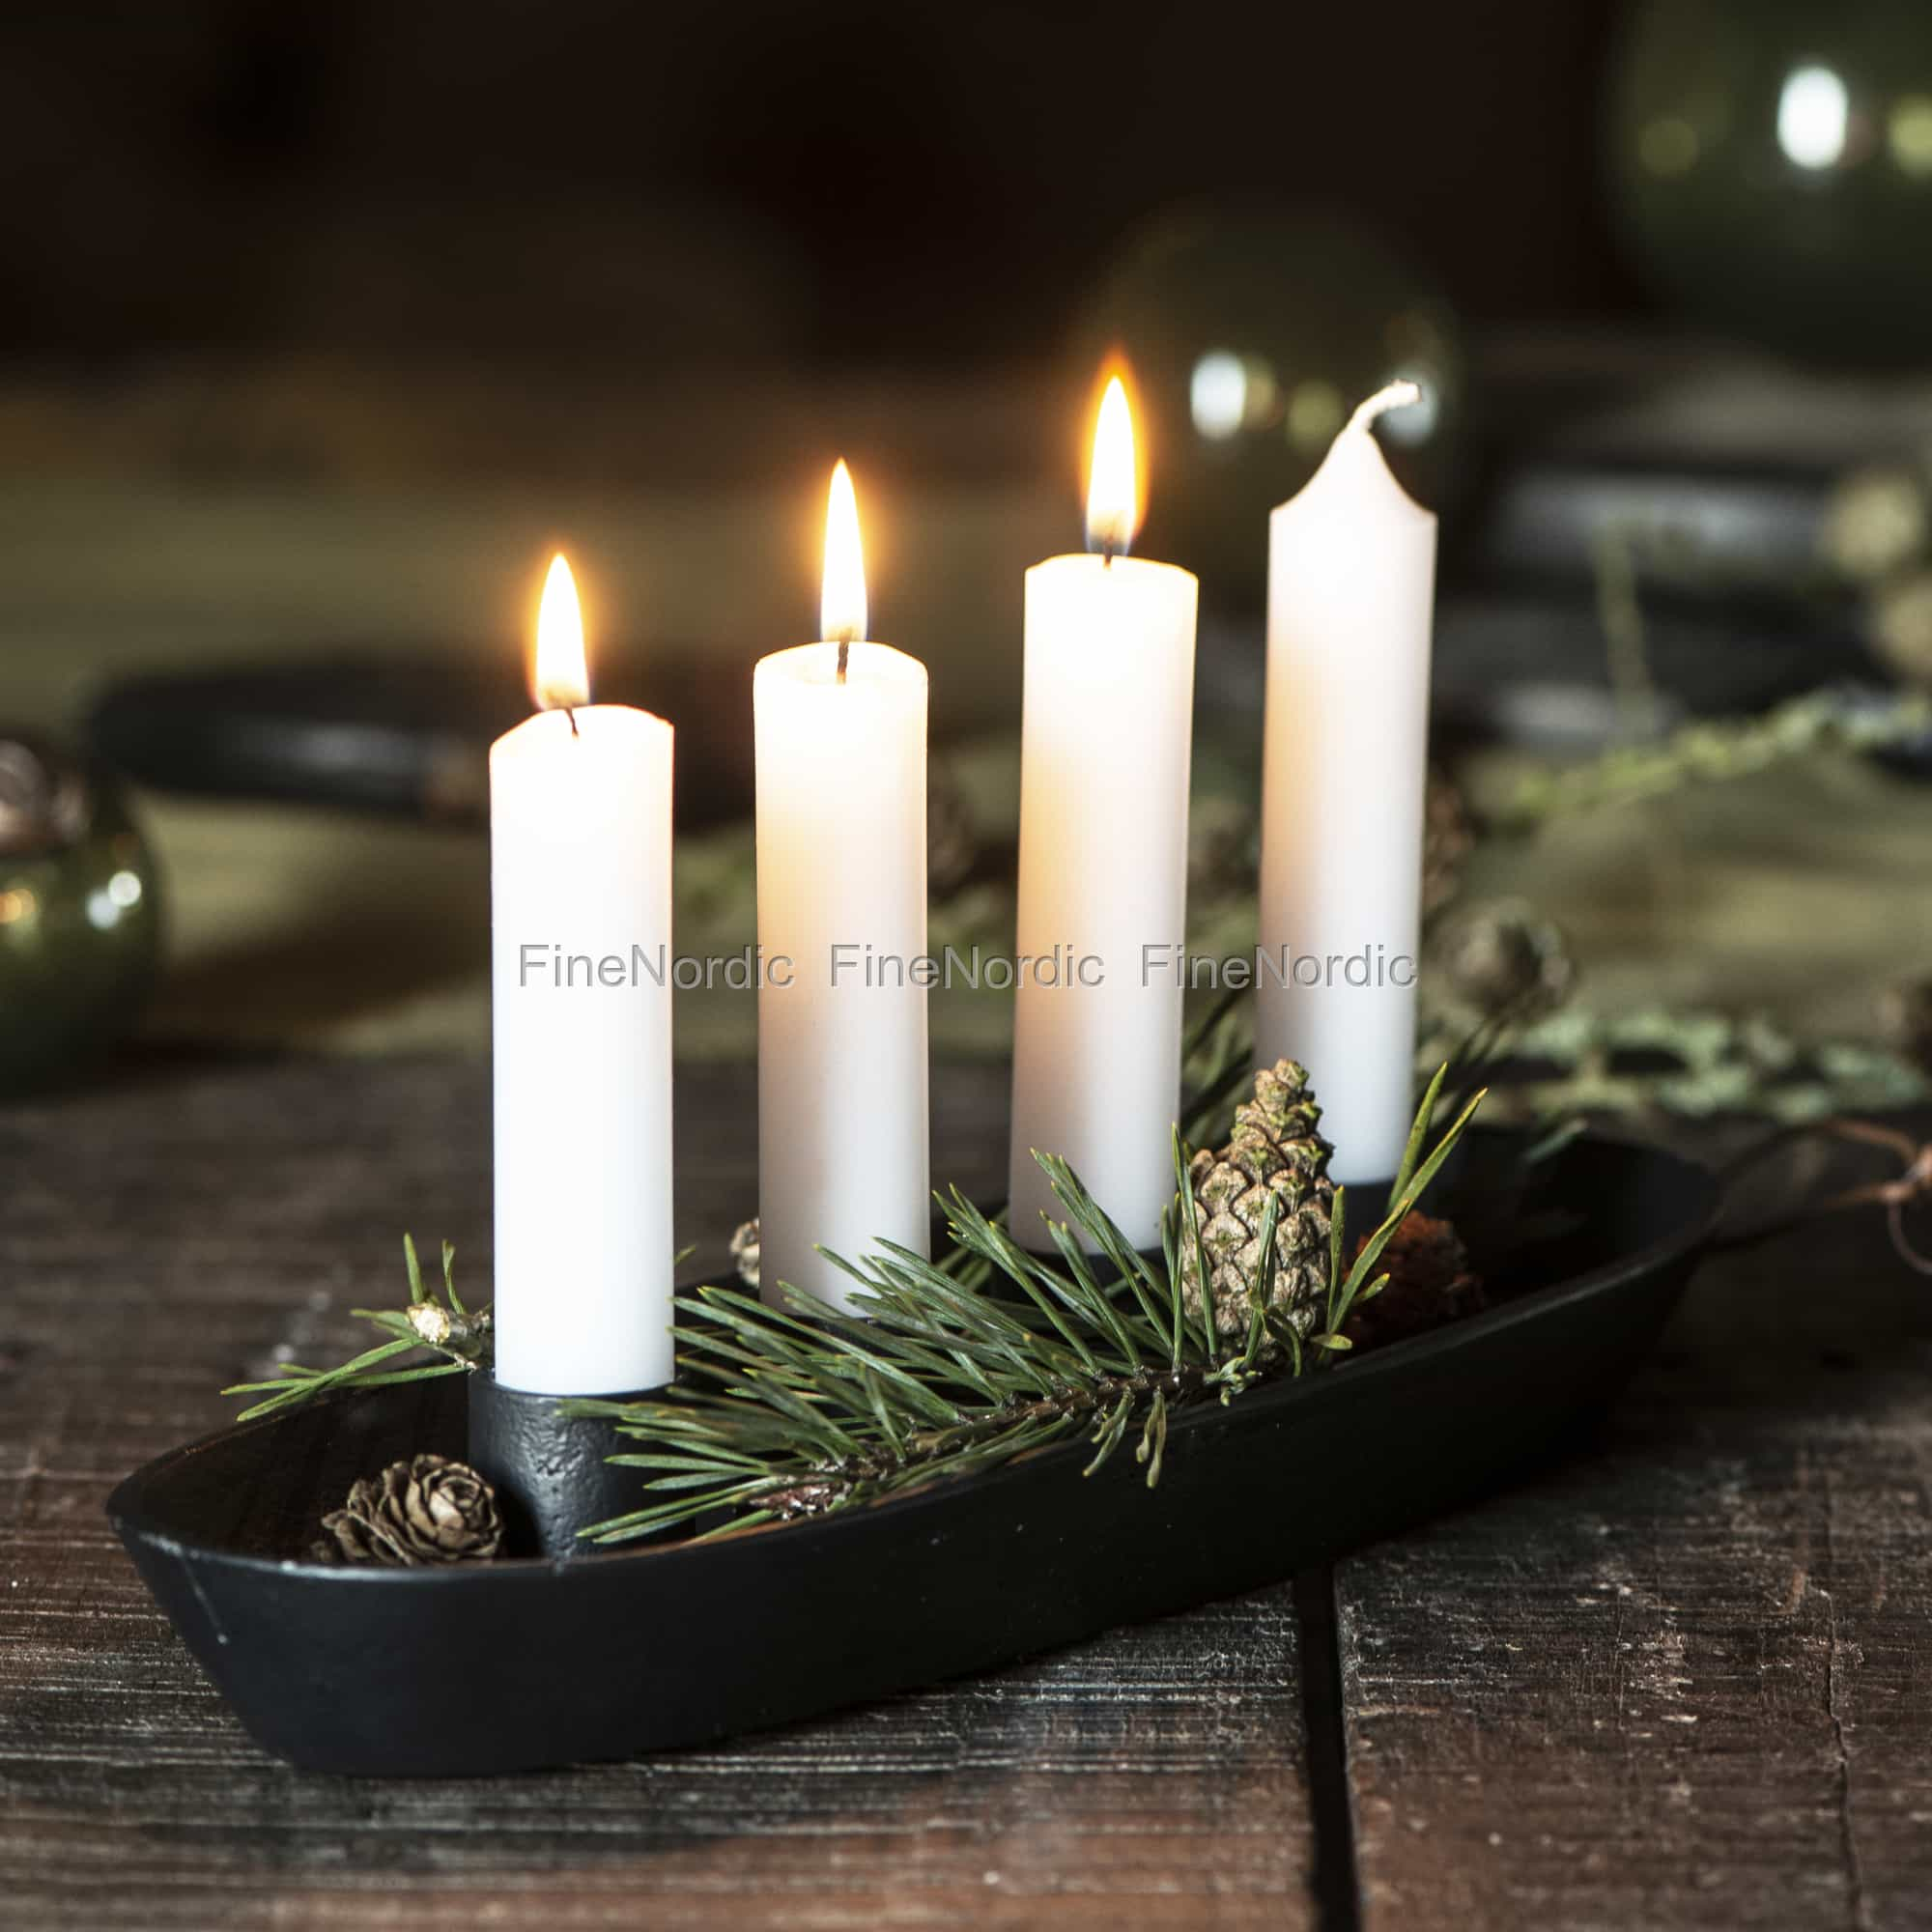 Ib Laursen Advent Candle Holder For 4 Candles